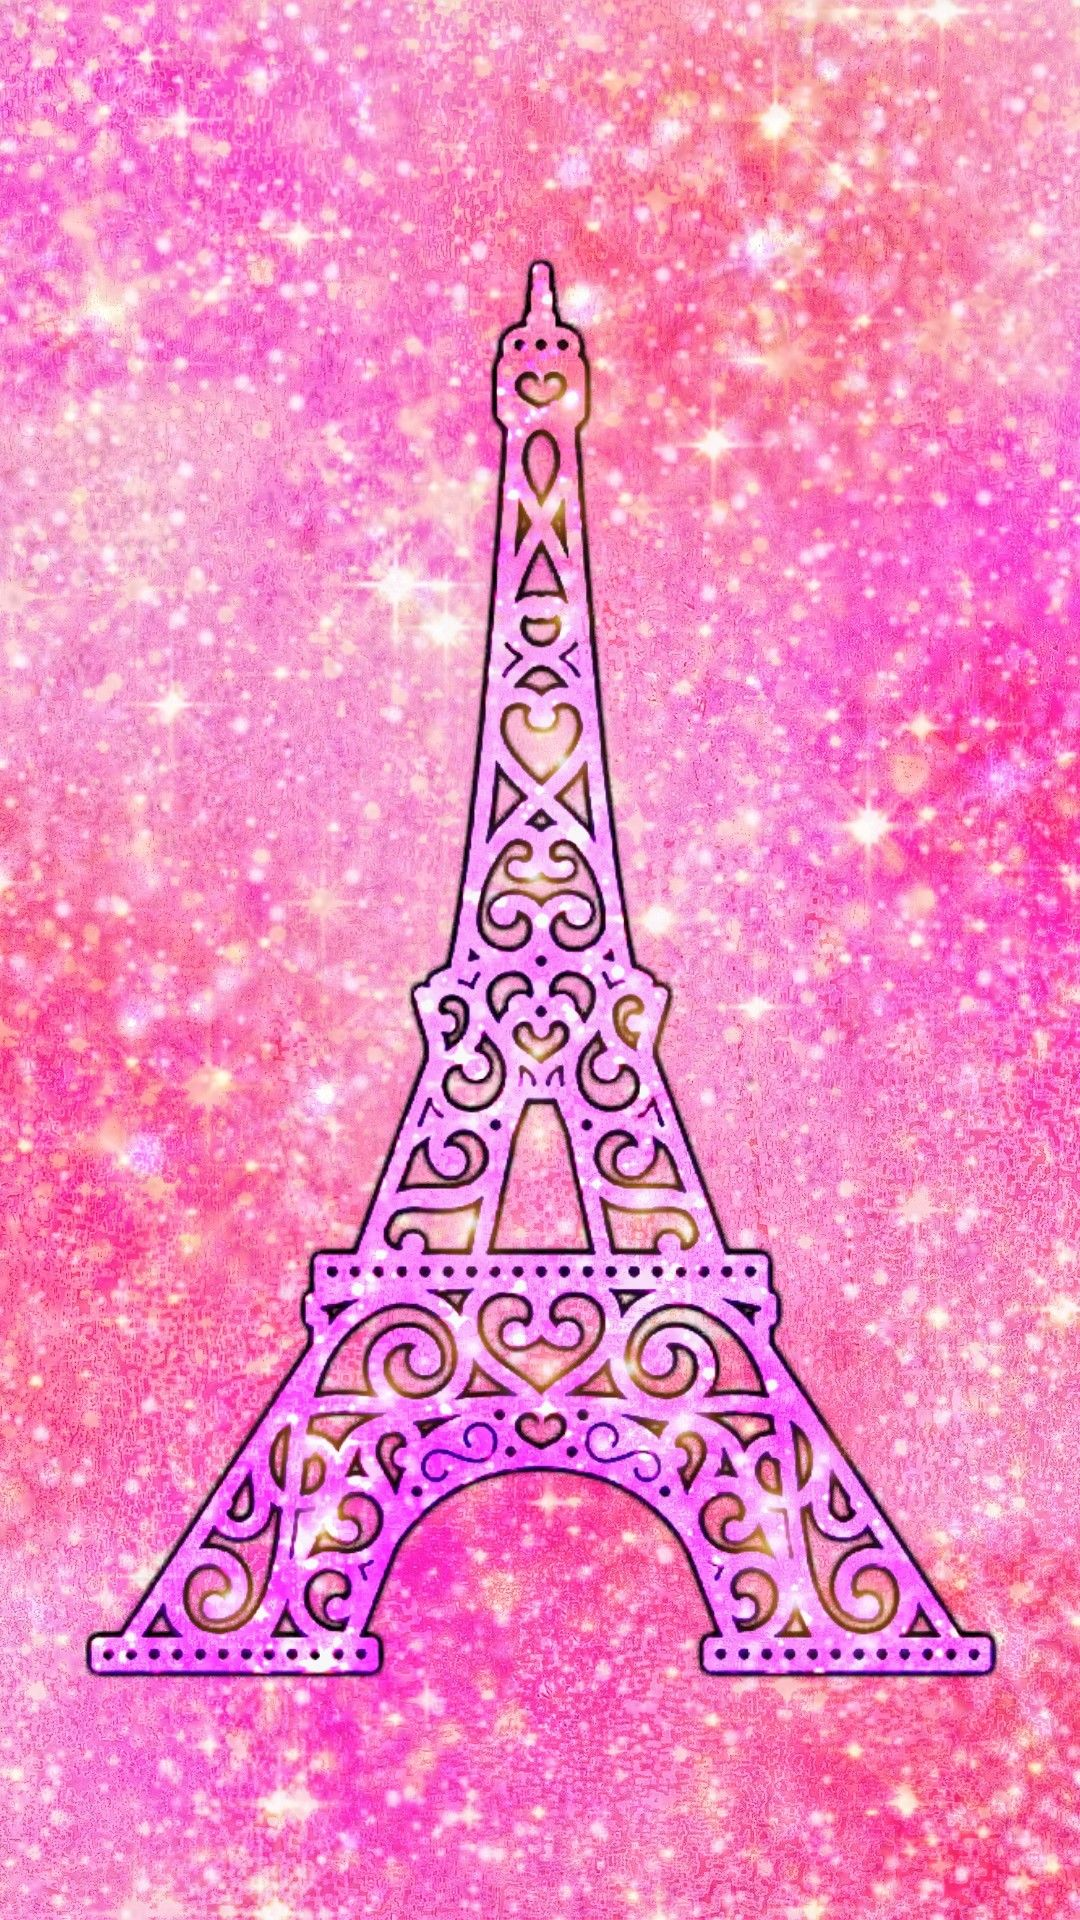 Pretty Pink Paris Made By Me Paris Pink Wallpapers Glitter Sparkles Backgrounds Eiffeltower Pink Wallpaper Pink Wallpaper Home Glitter Phone Wallpaper